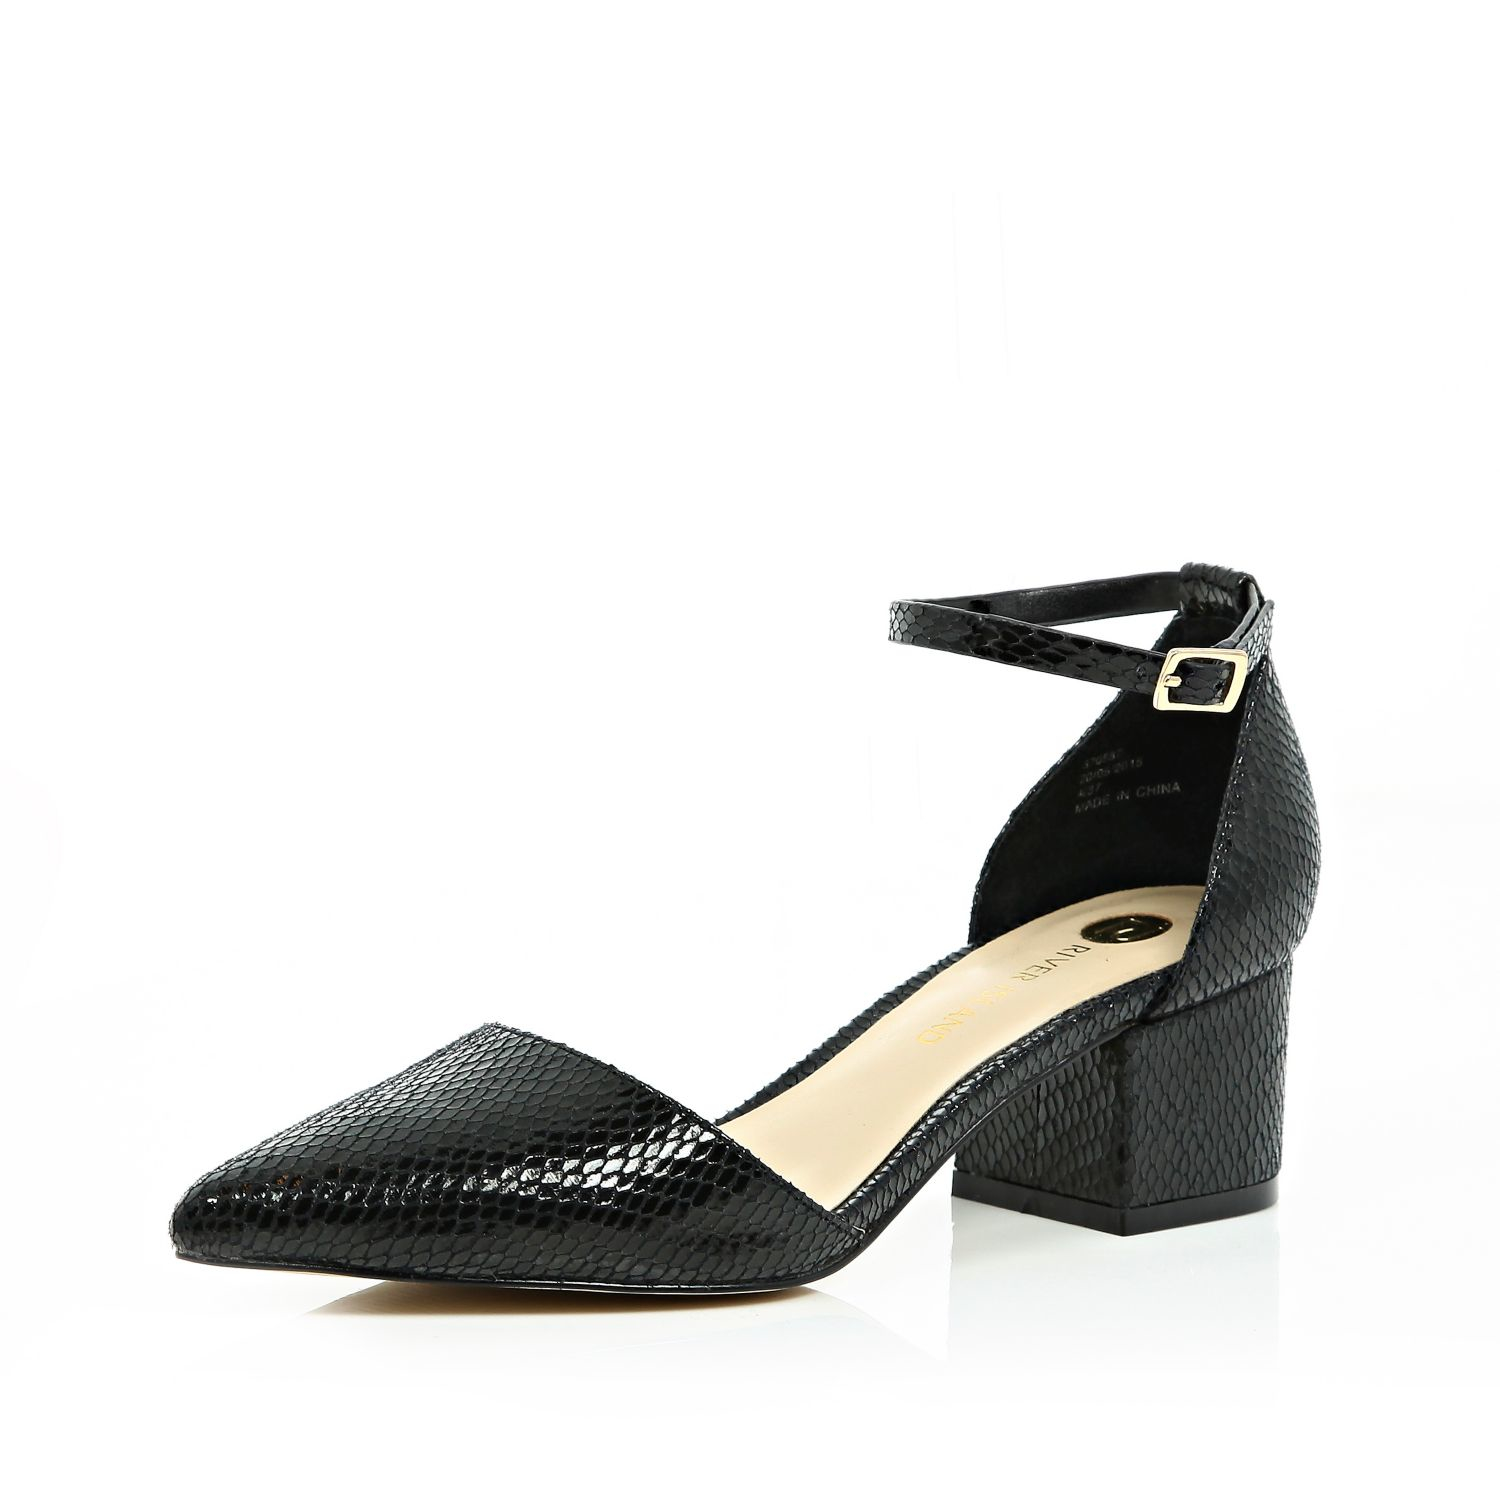 8032bee220d436 River Island Black Block Heel Pointed Shoes in Black - Lyst